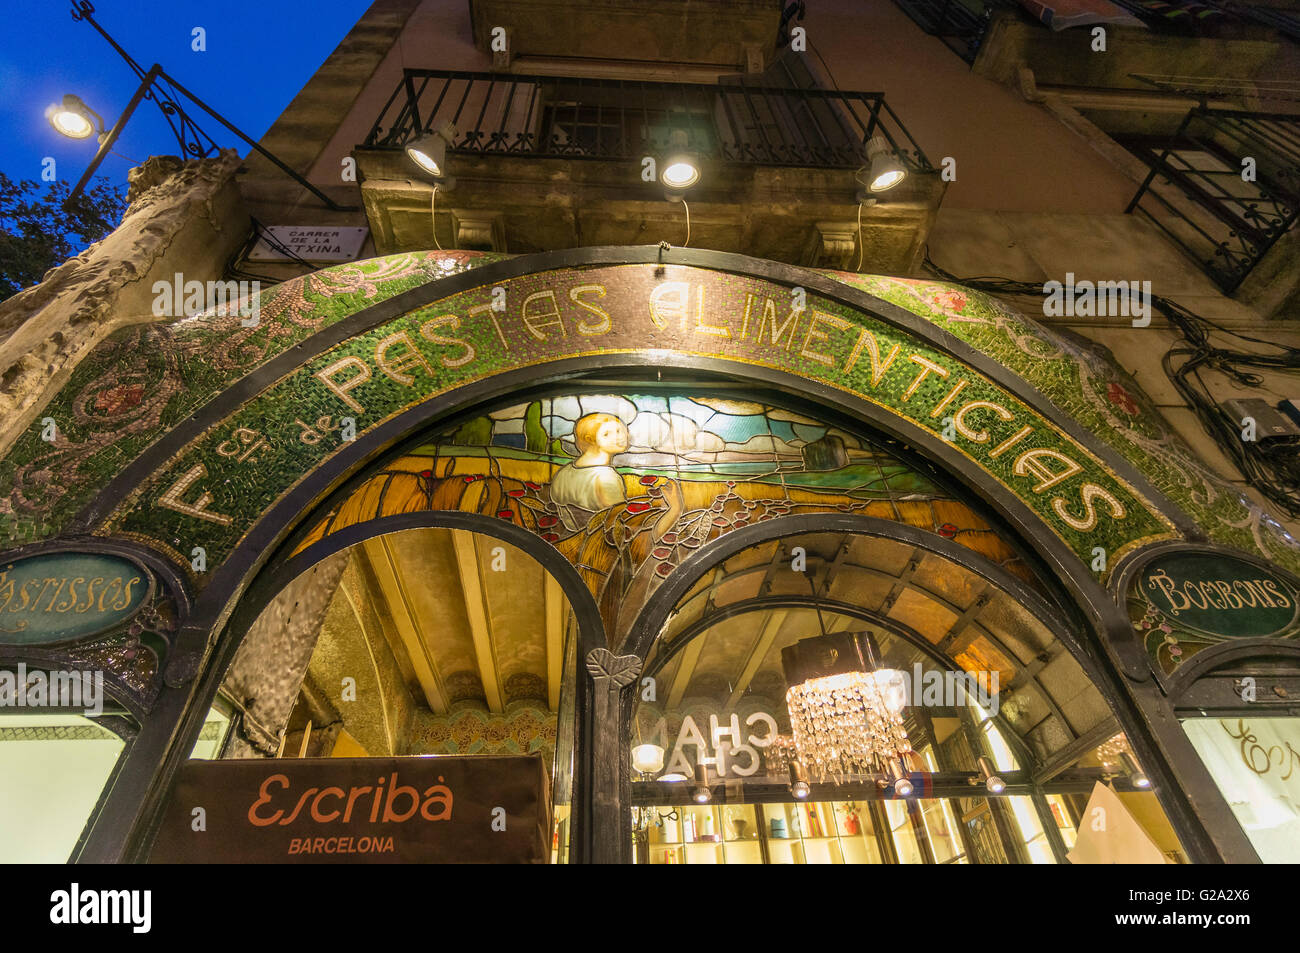 Pasteleria Escriba, Pastry Shop, Art Deco, Ramblas, Barcelona, Catalonia, Spain - Stock Image